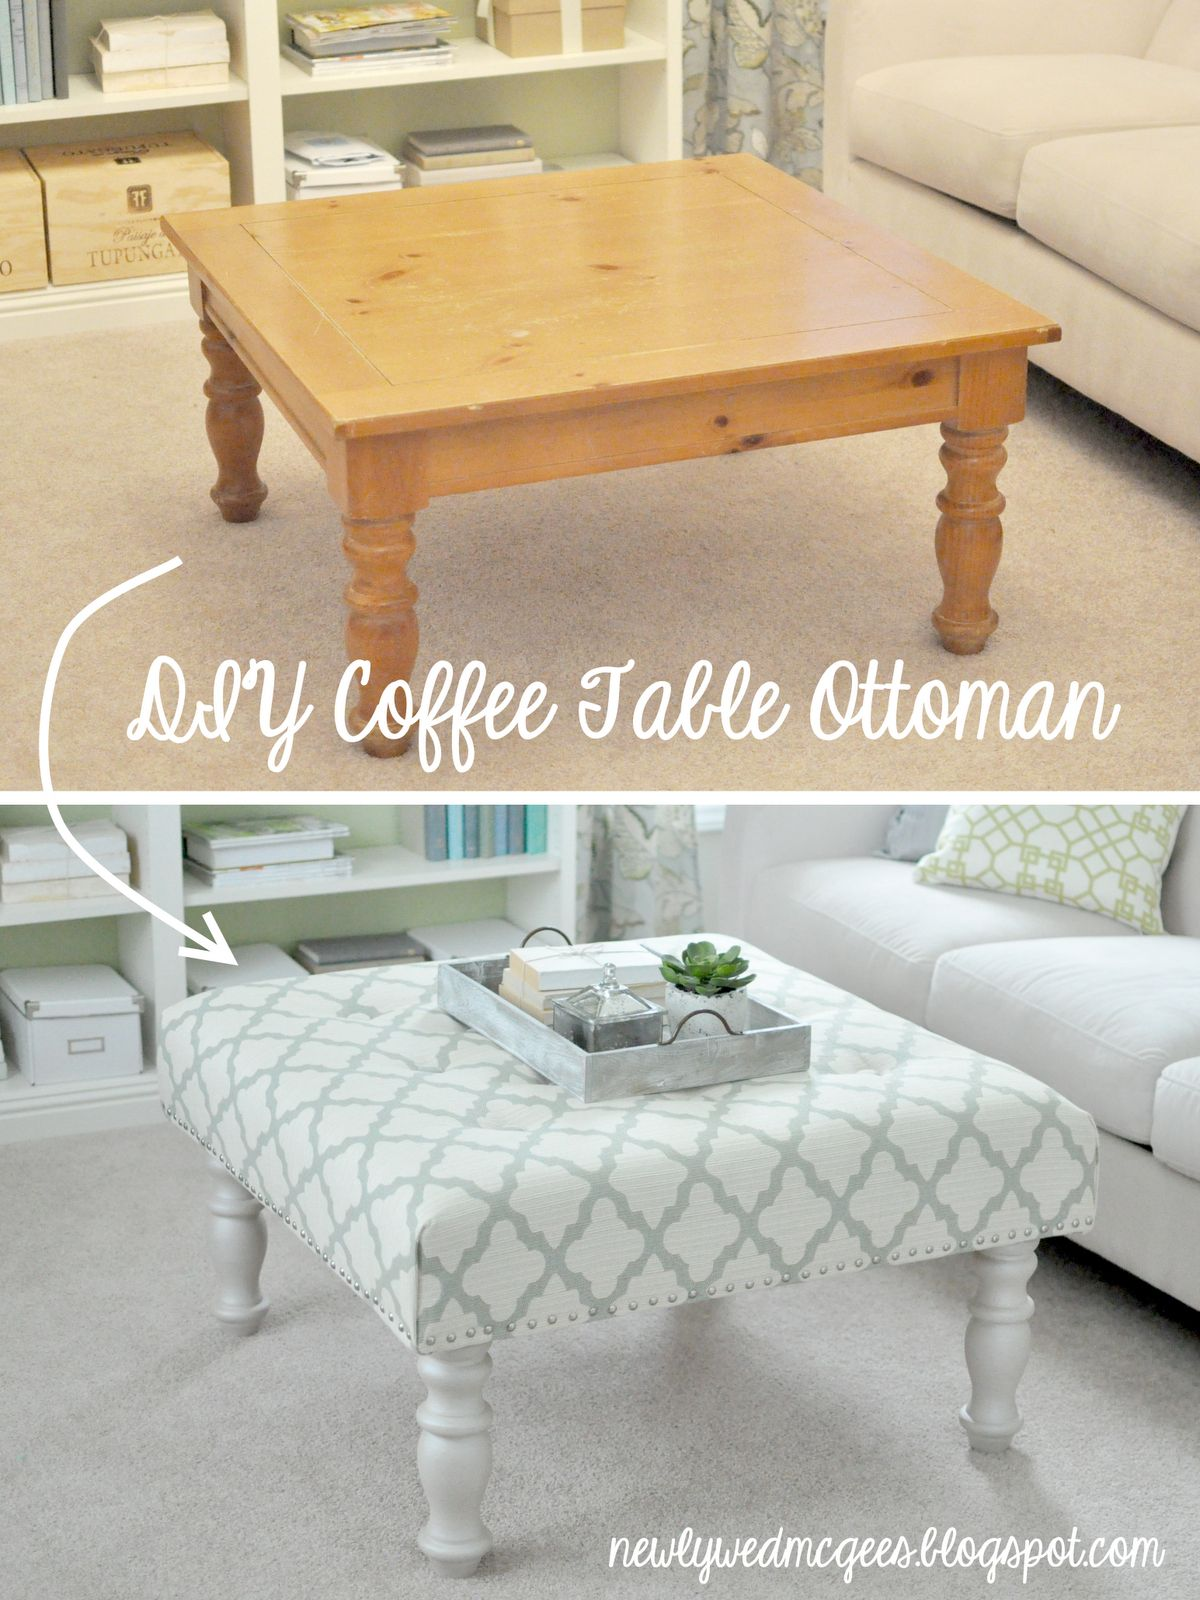 Turn Ottoman Into Coffee Table Collection A Collection Of 16 Beautiful Coffee Table Ideas And Diy Furniture Easy Diy Furniture Hacks Shabby Chic Coffee Table [ 1600 x 1200 Pixel ]